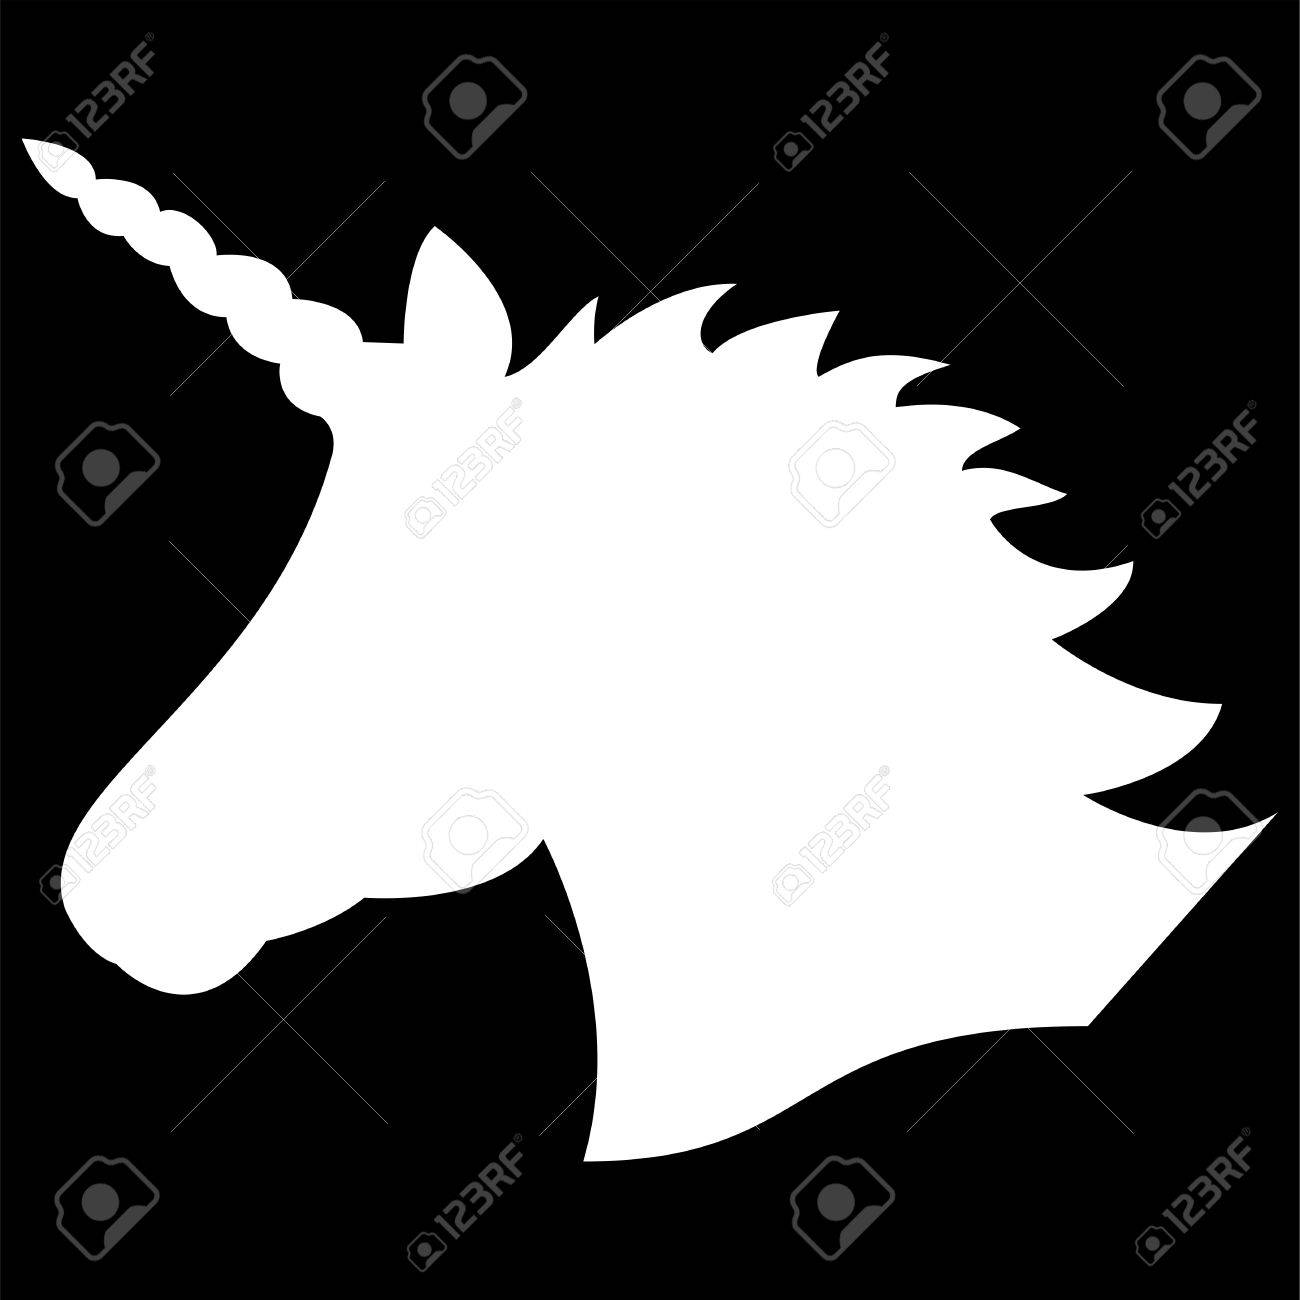 Simple monochrome shape silhouette of the magical unicorn